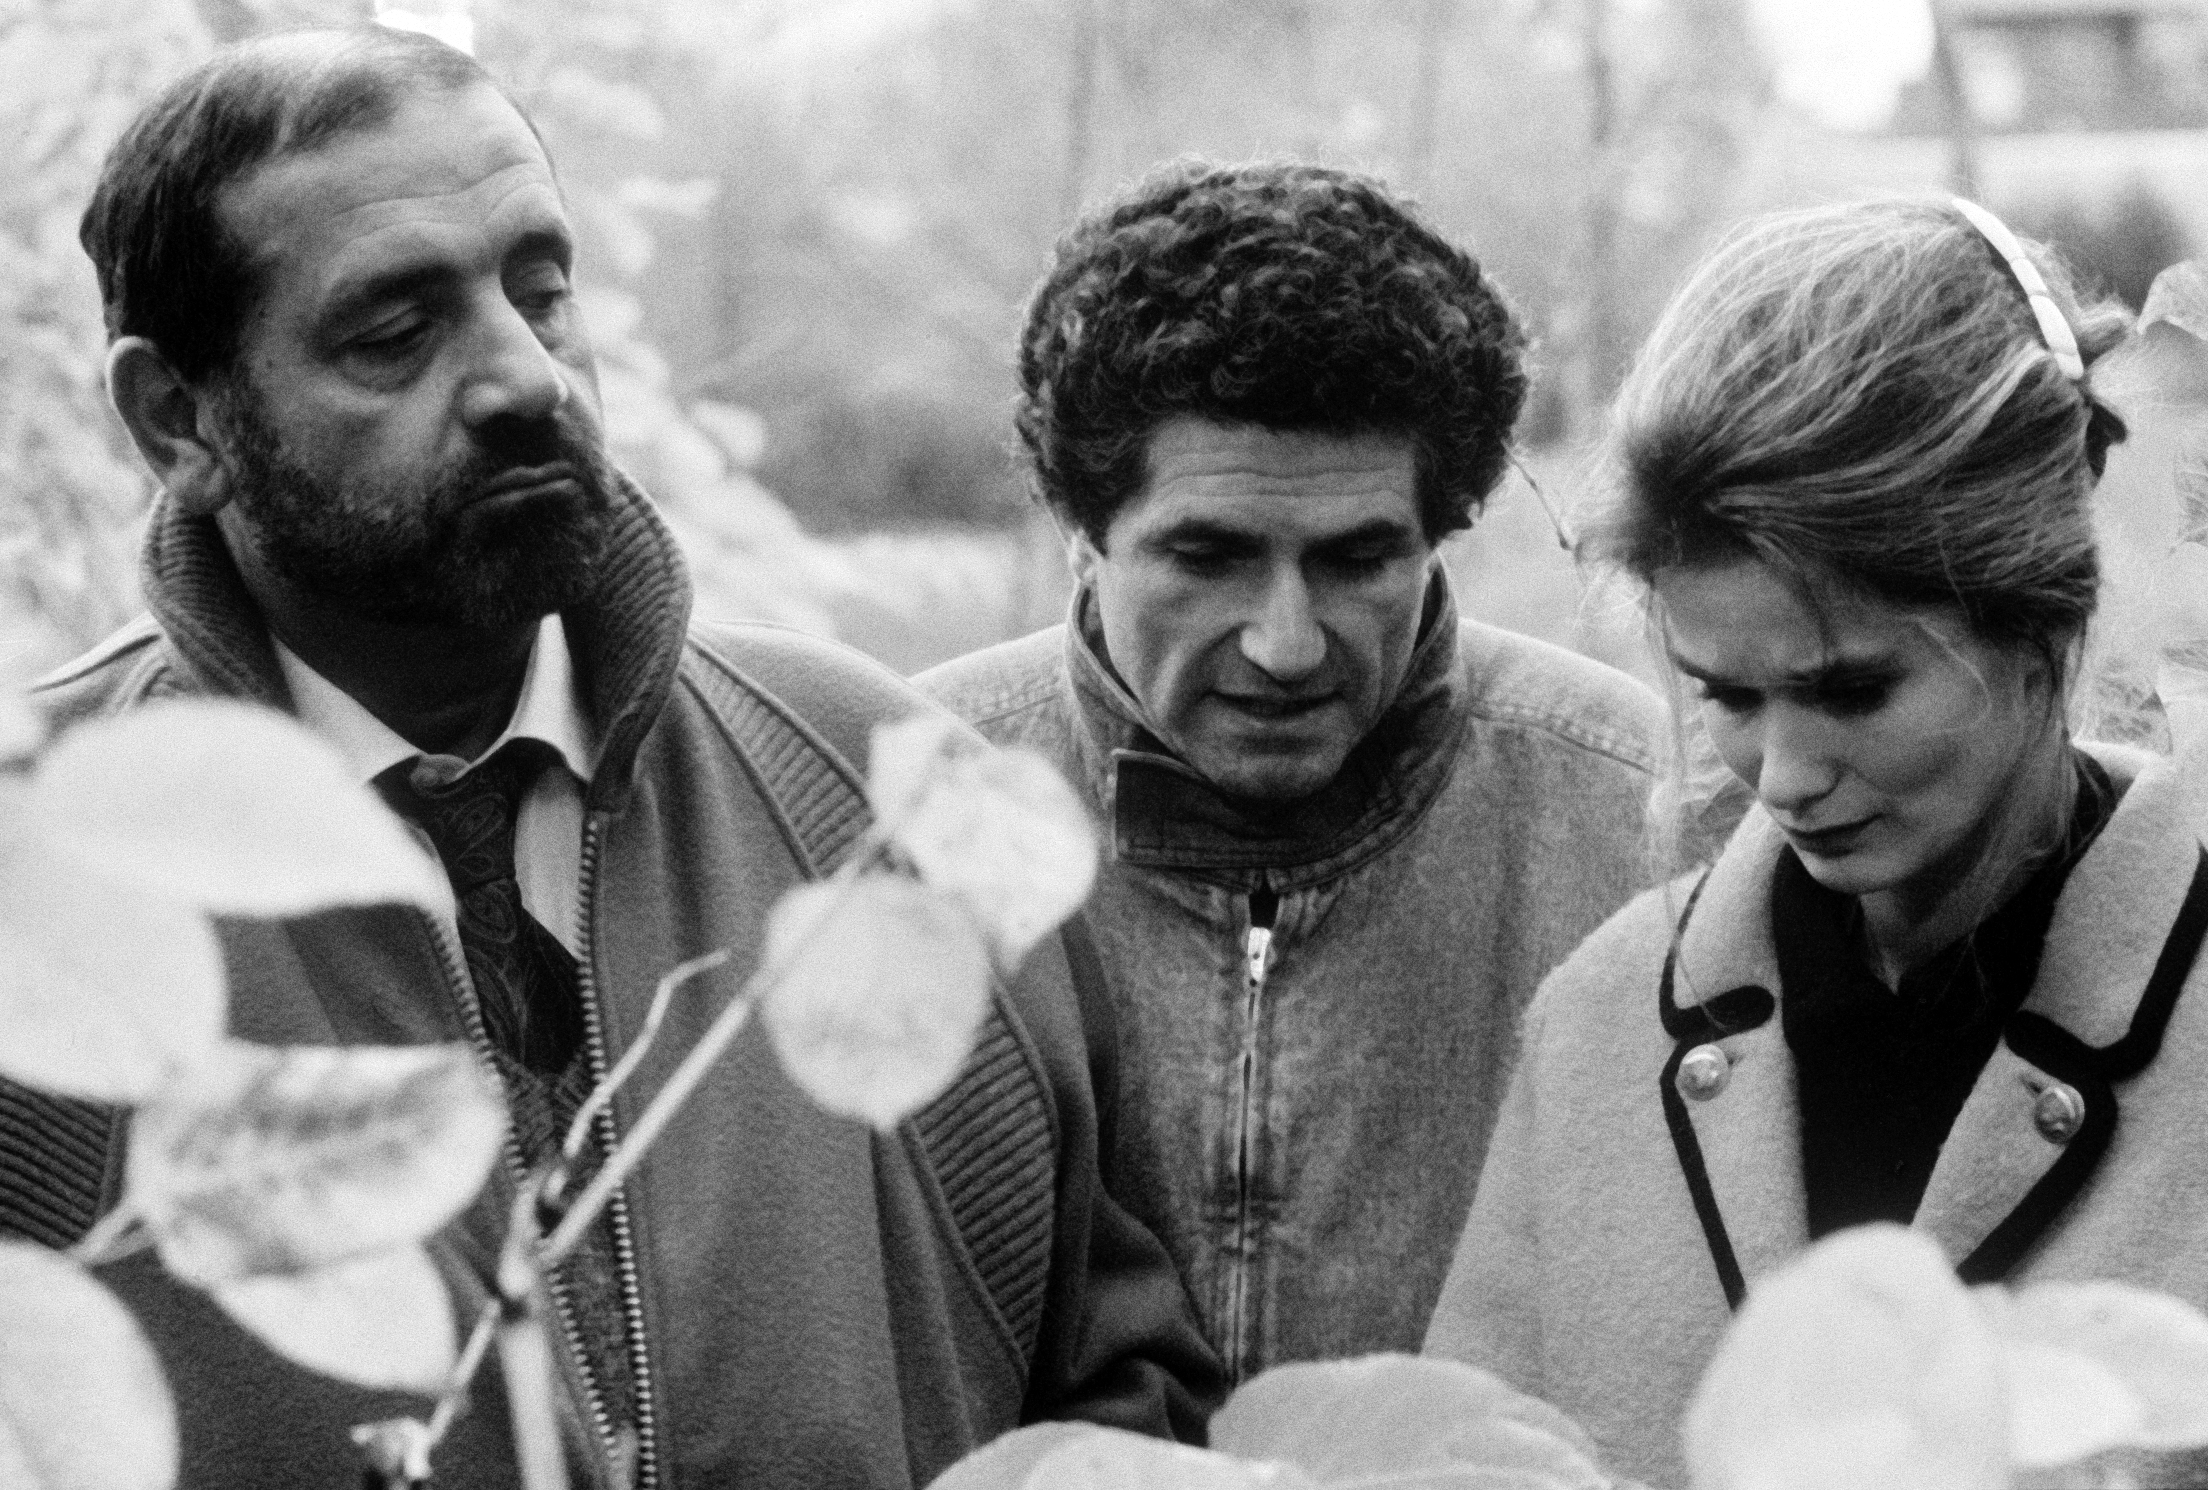 Marie-Sophie L., Claude Lelouch, and Jean Yanne in Attention bandits! (1986)